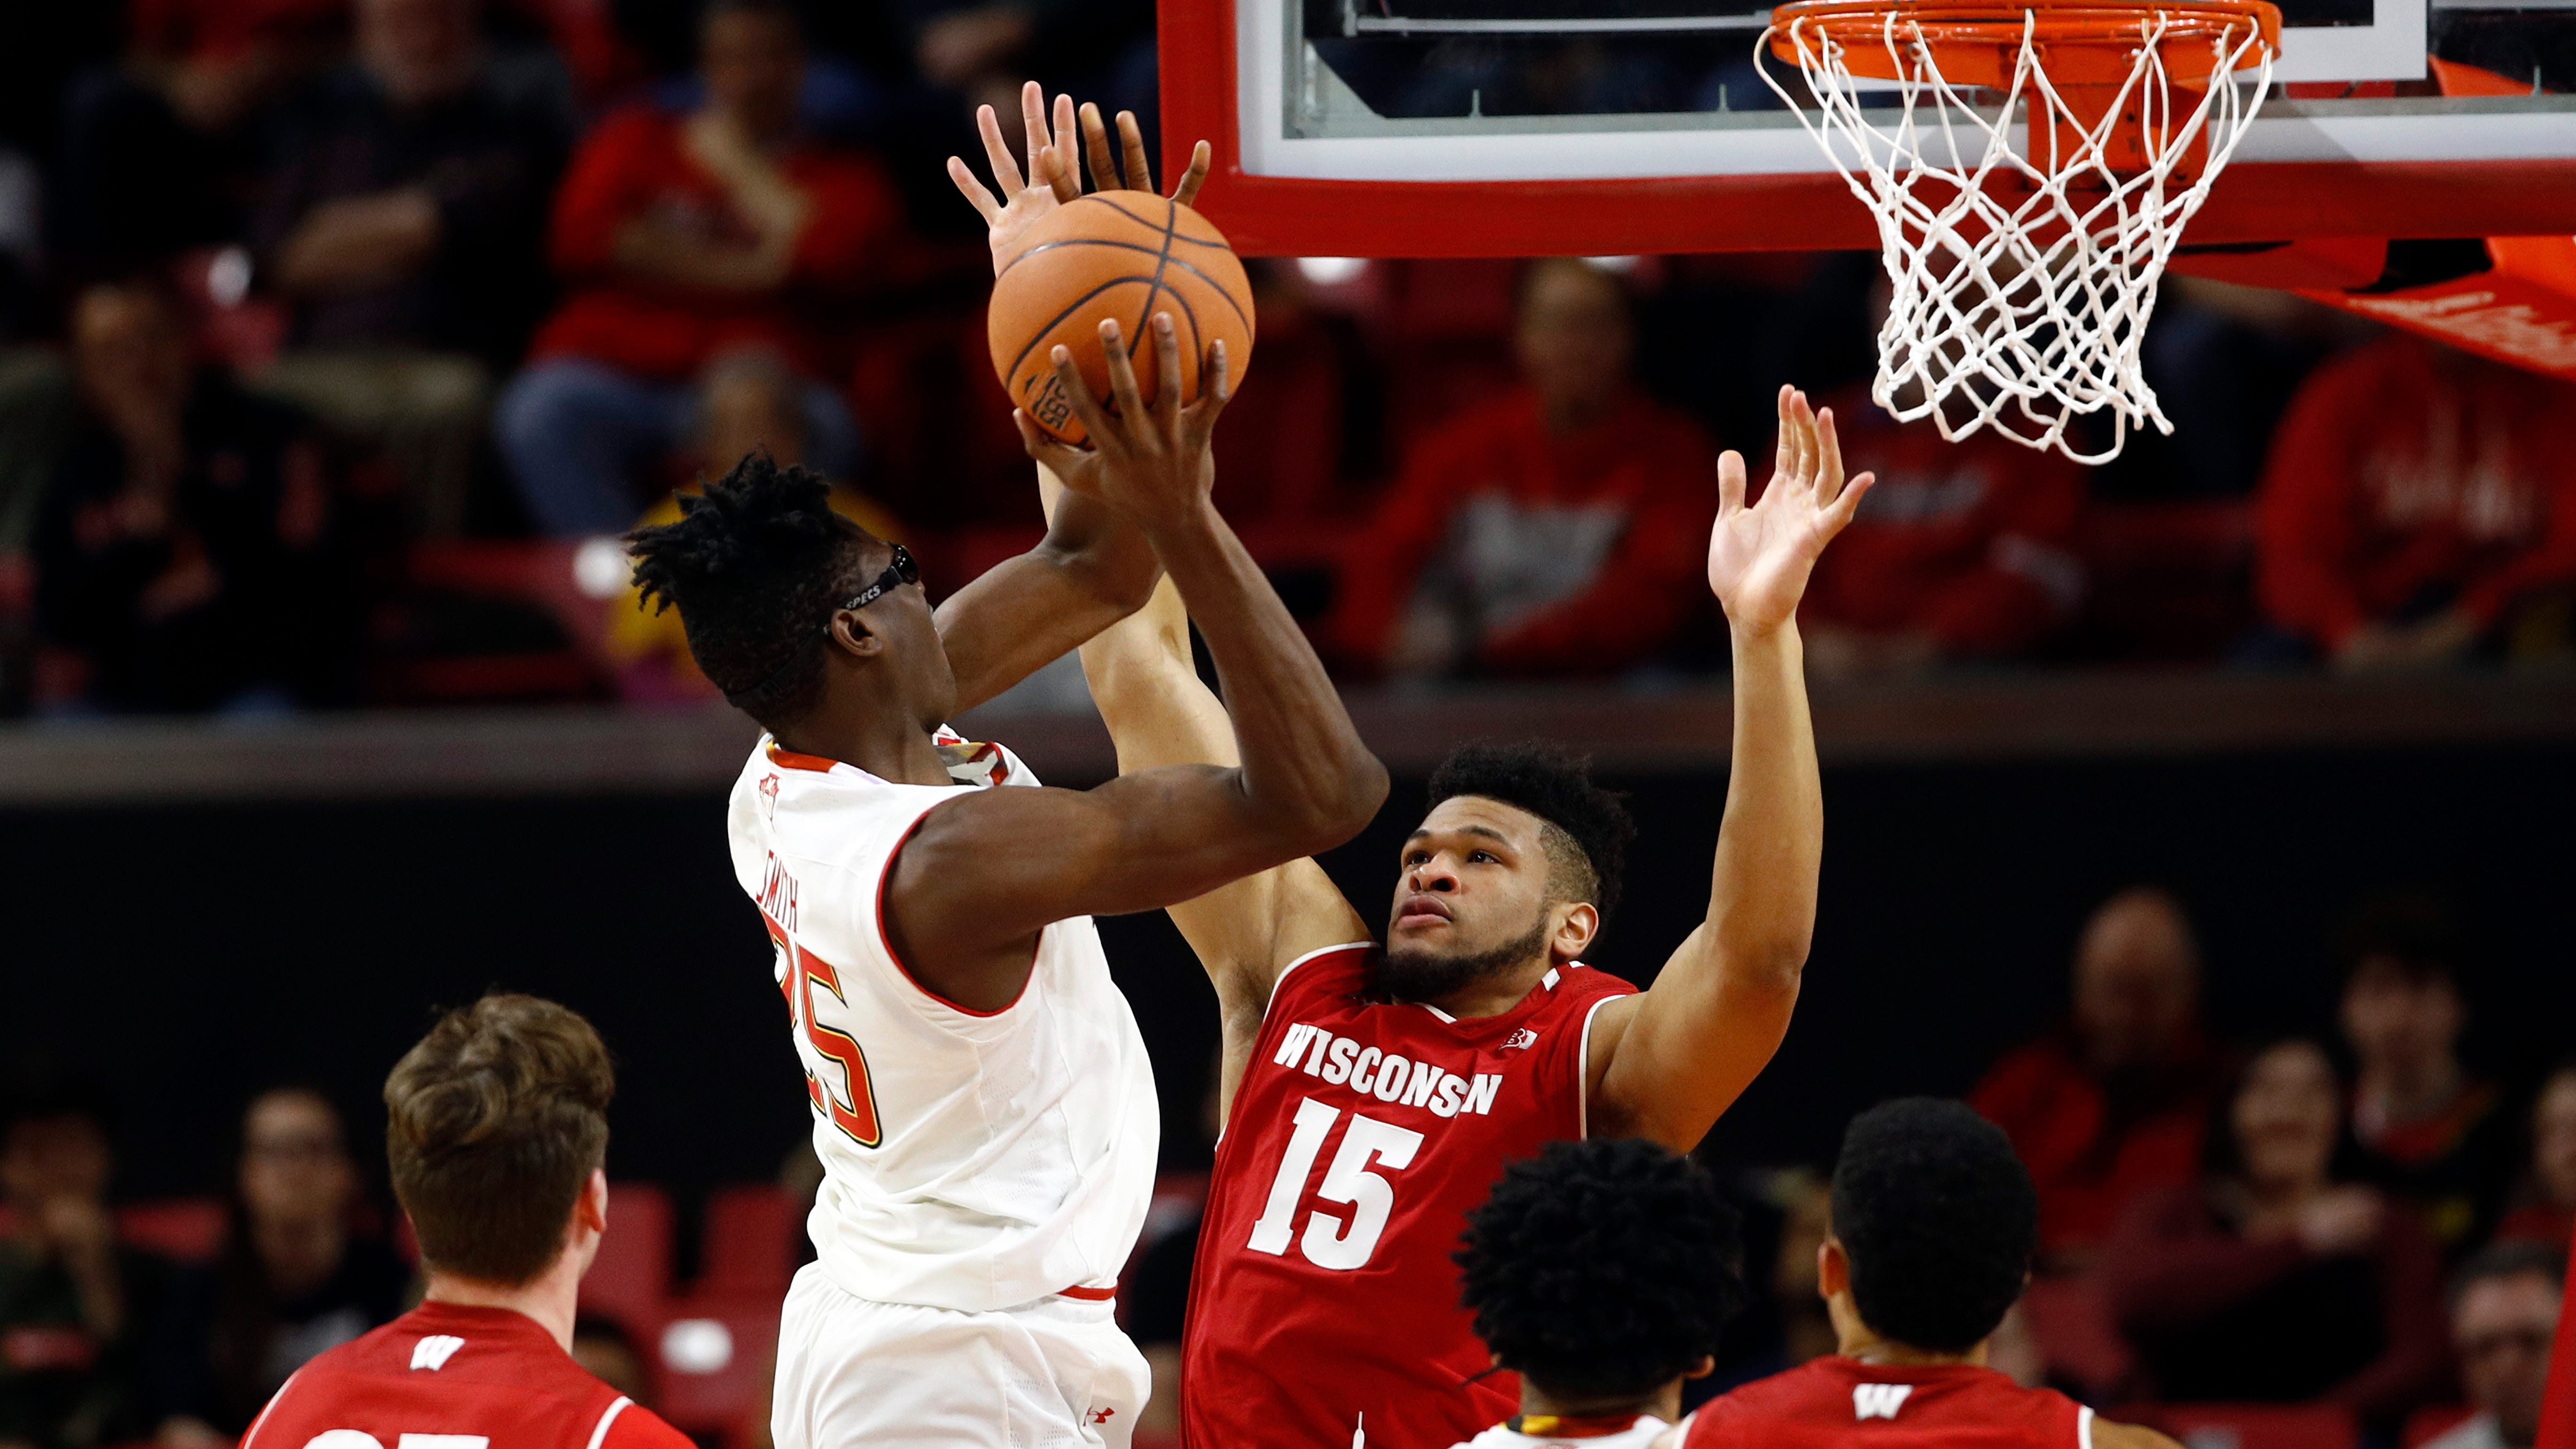 Maryland forward Jalen Smith, left, shoots over Wisconsin forward Charles Thomas IV in the first half of an NCAA college basketball game, Monday, Jan. 14, 2019, in College Park, Md. (AP Photo/Patrick Semansky) ORG XMIT: MDPS102